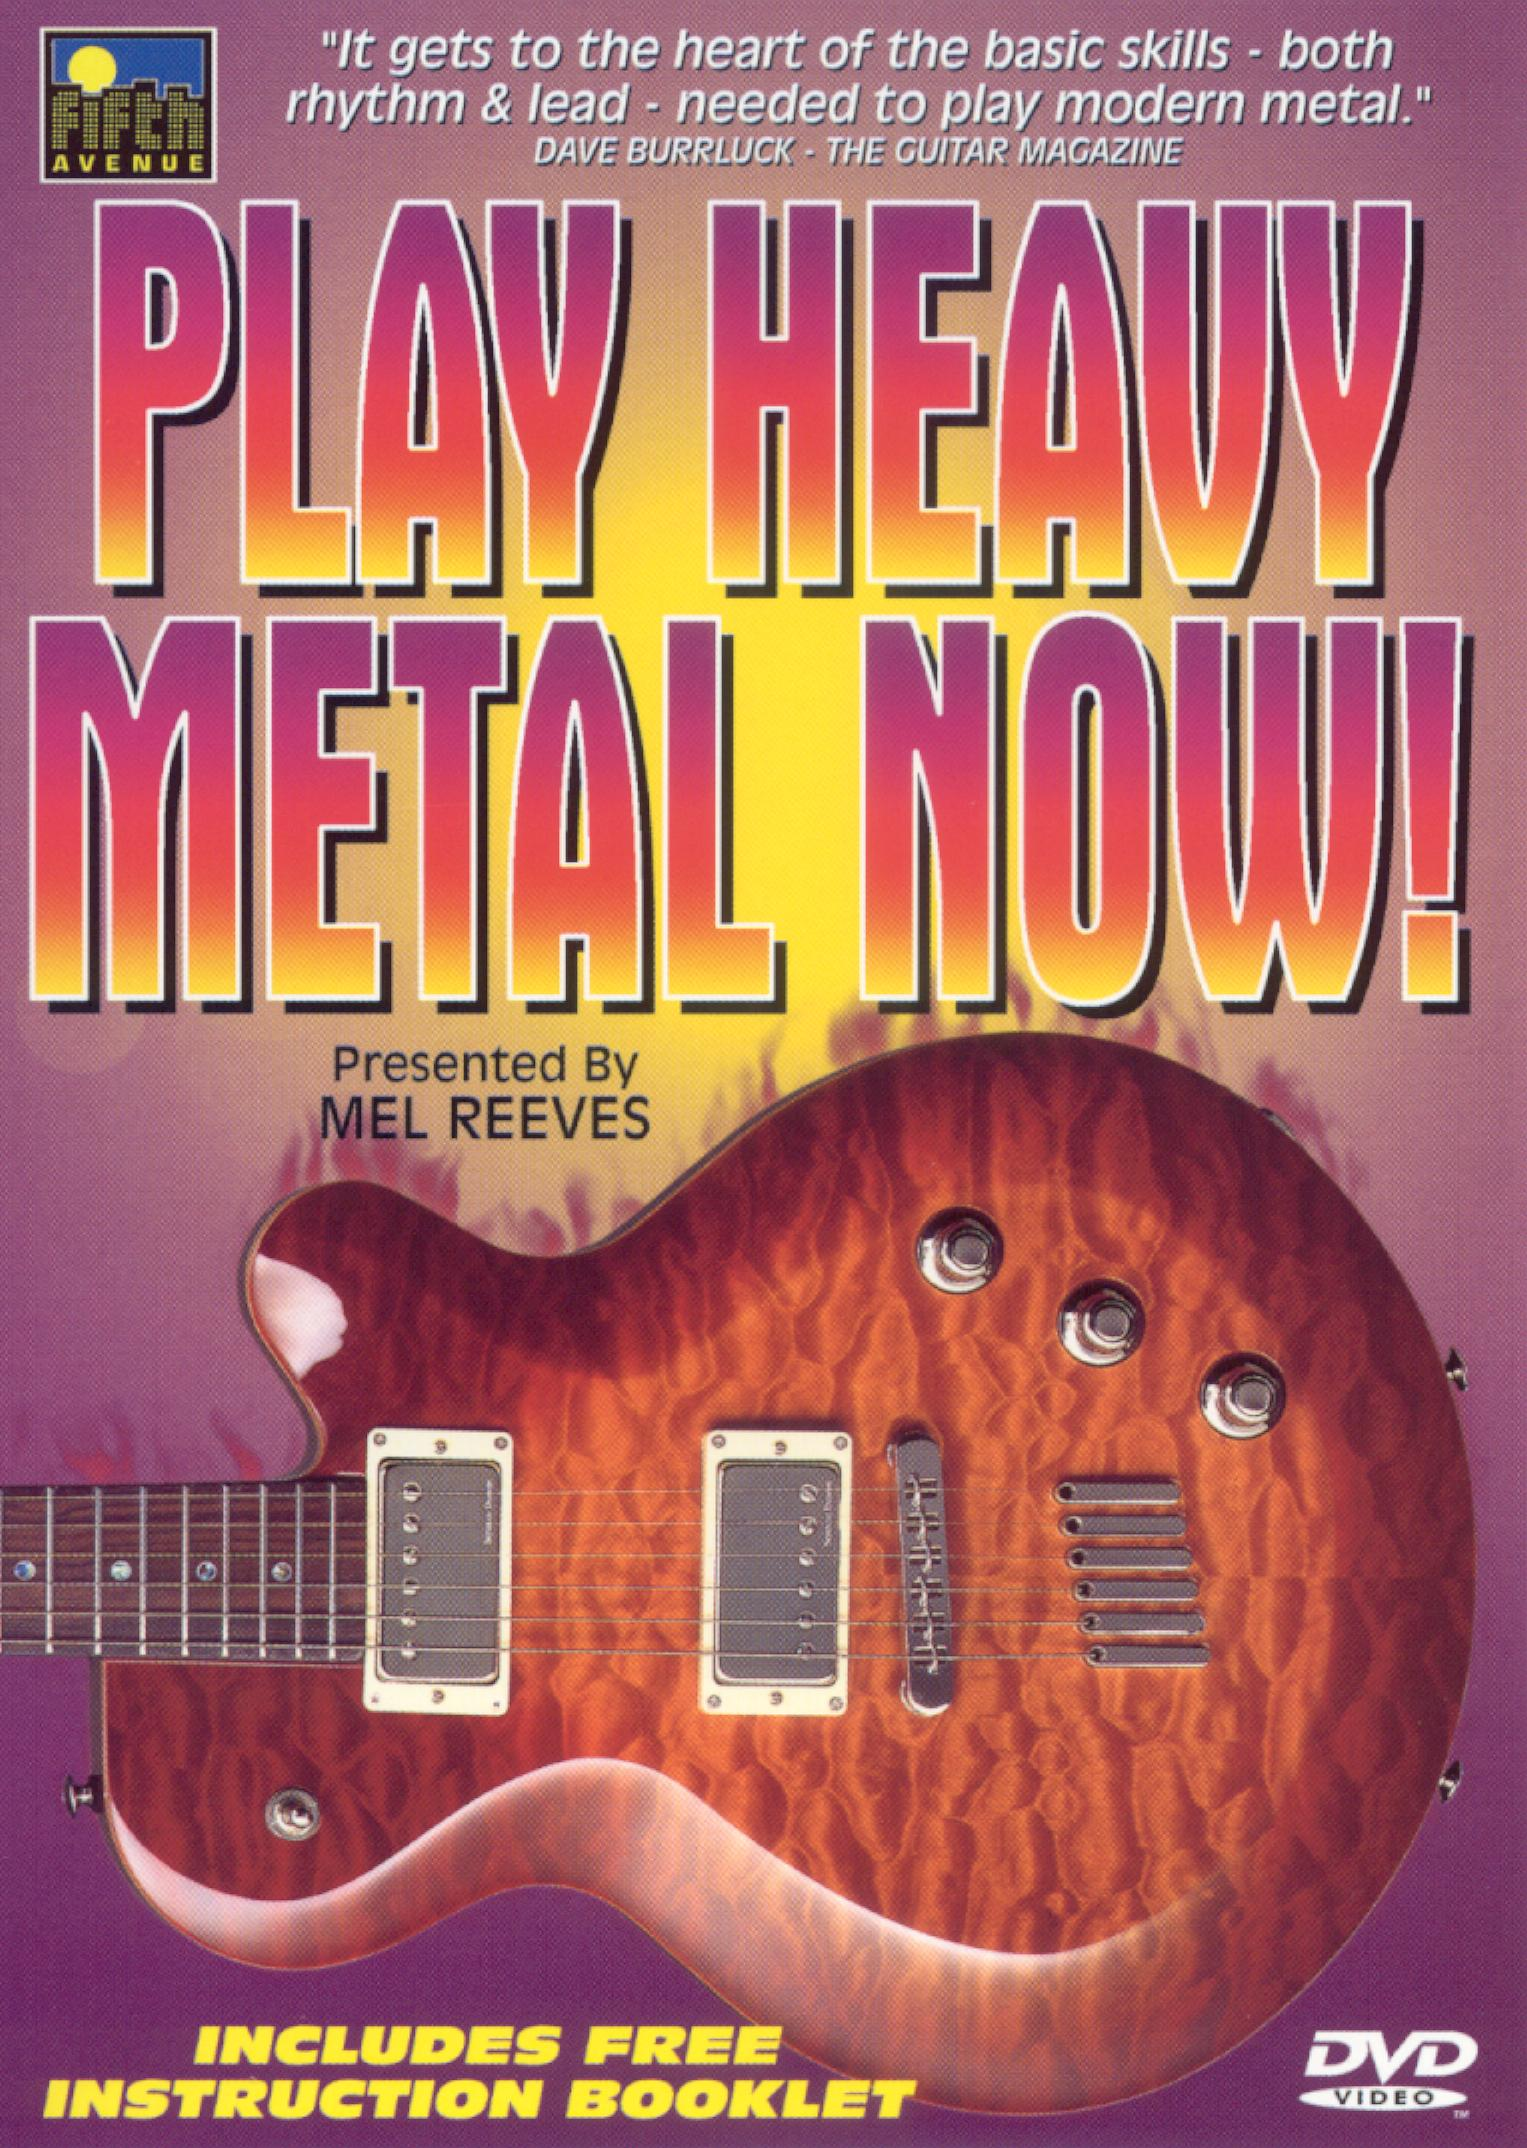 Play Heavy Metal Now